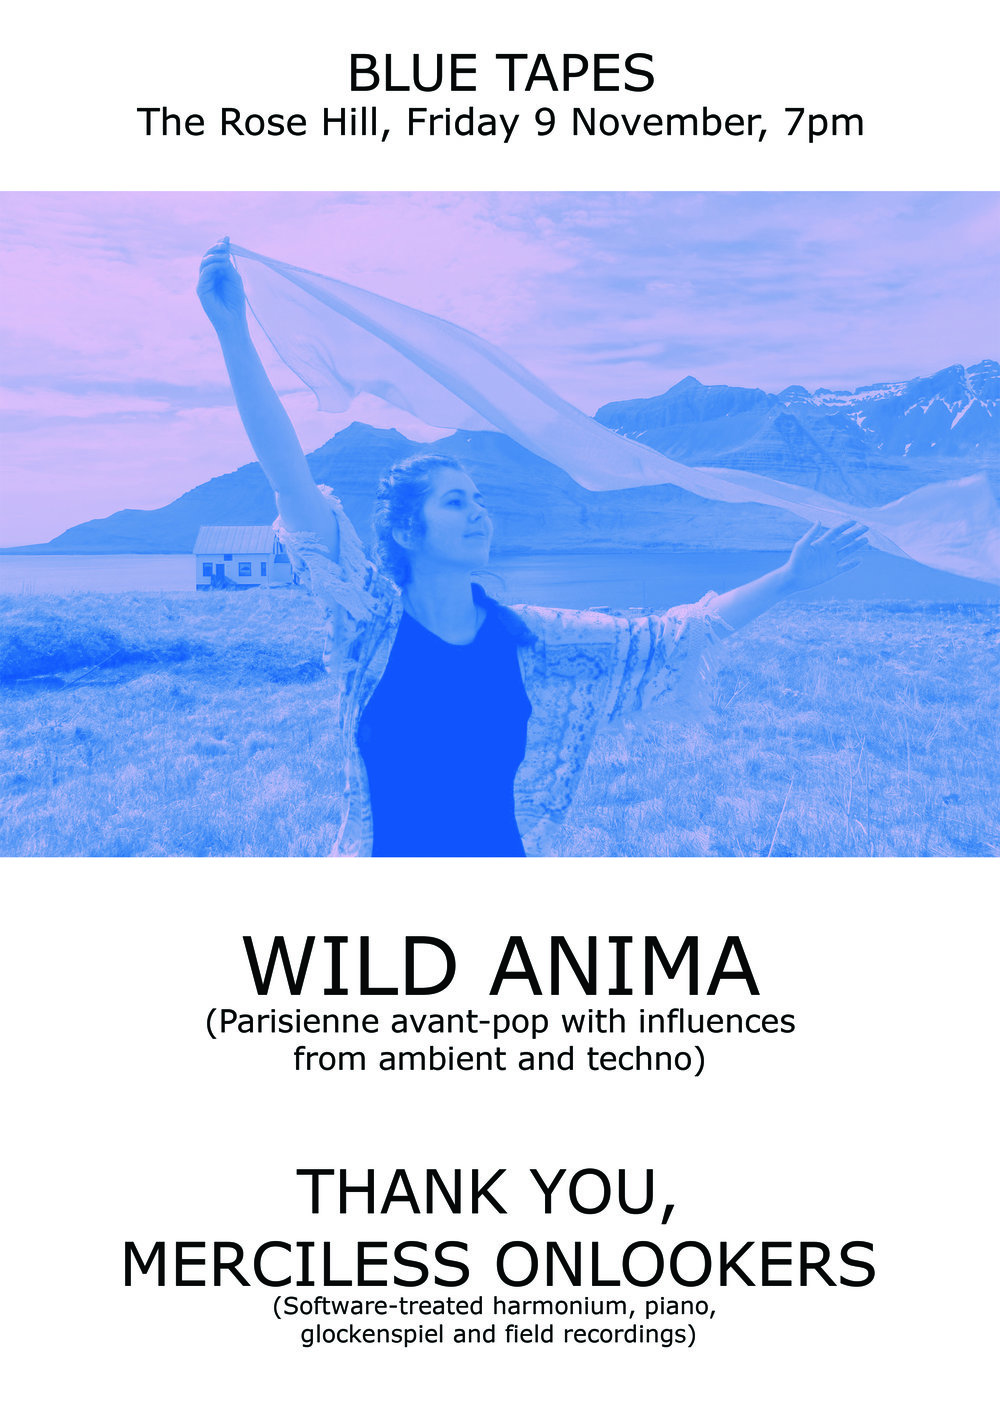 wild anima rose hill a3 - Blue Tapes.jpg